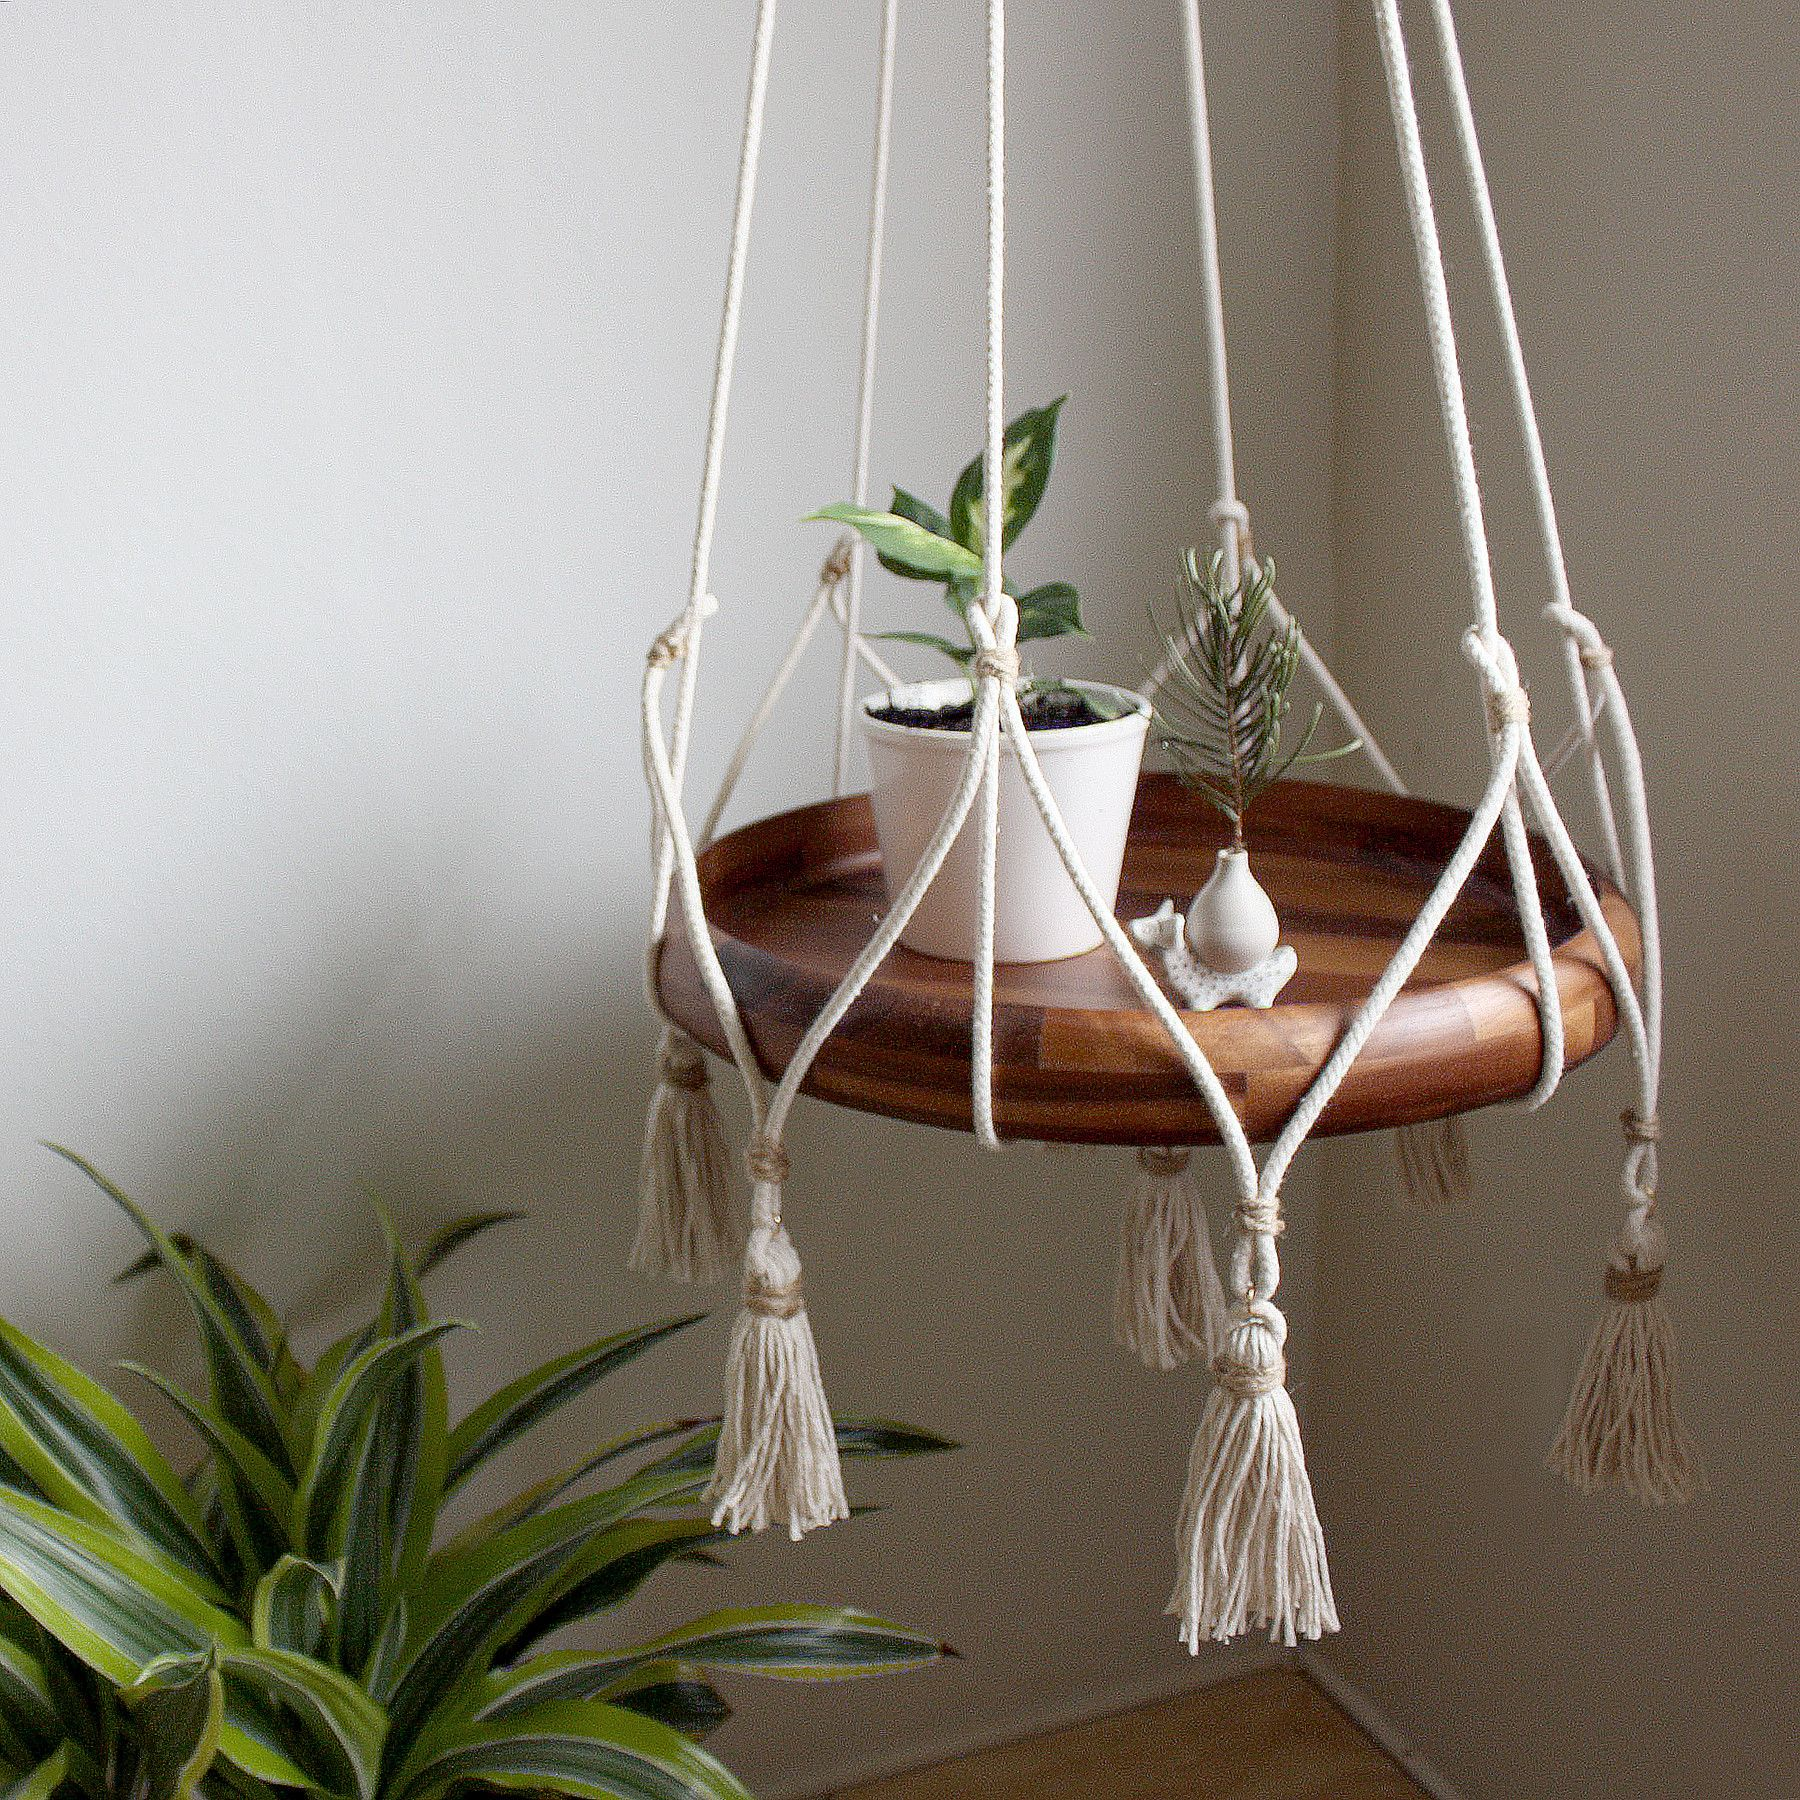 Hanging Table/Plant Holder With Tassels